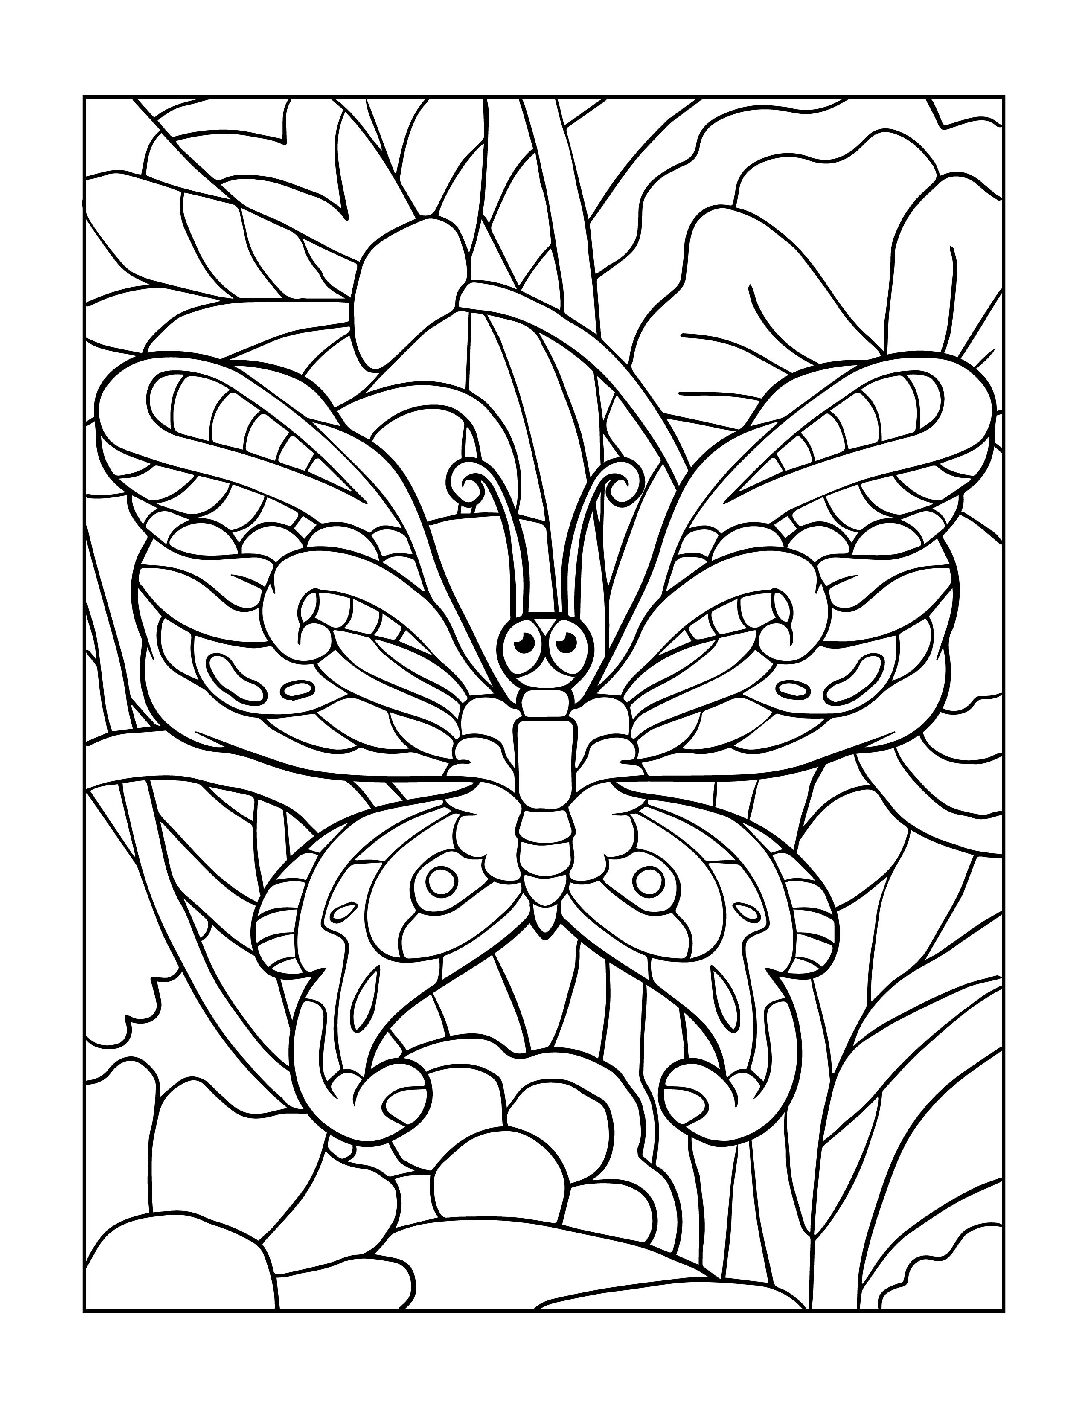 Coloring-Pages_Butterflies-11-01-1-pdf Free Printable Butterfly Colouring Pages